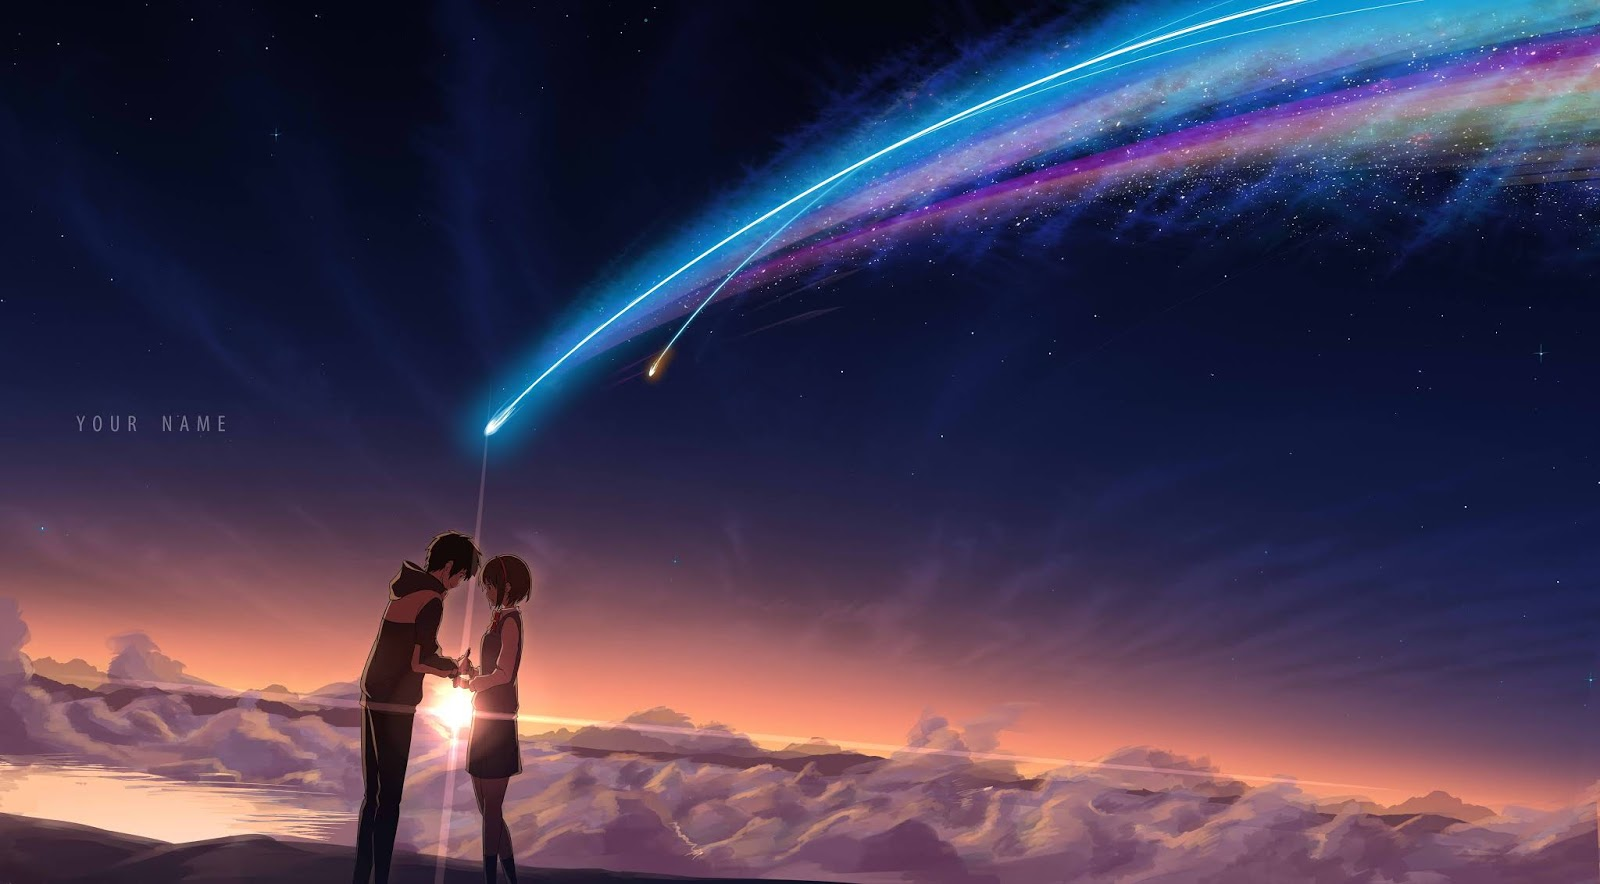 AowVN%2B%25282%2529 - [ Hình Nền ] Anime Your Name. - Kimi no Nawa full HD cực đẹp | Anime Wallpaper